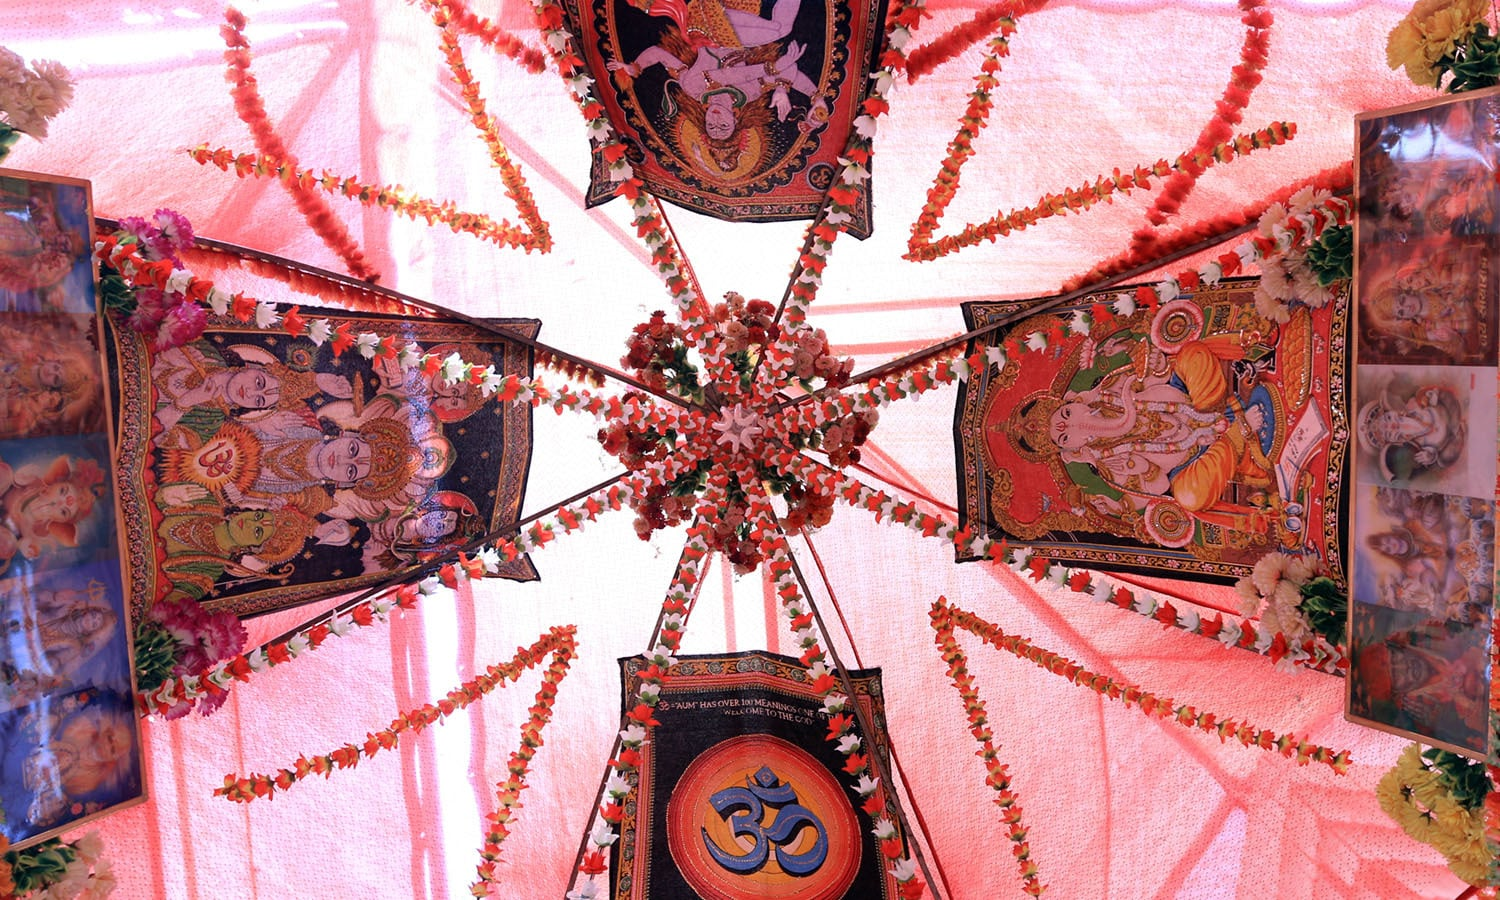 The venue decorated with flowers and images of Hindu deities.